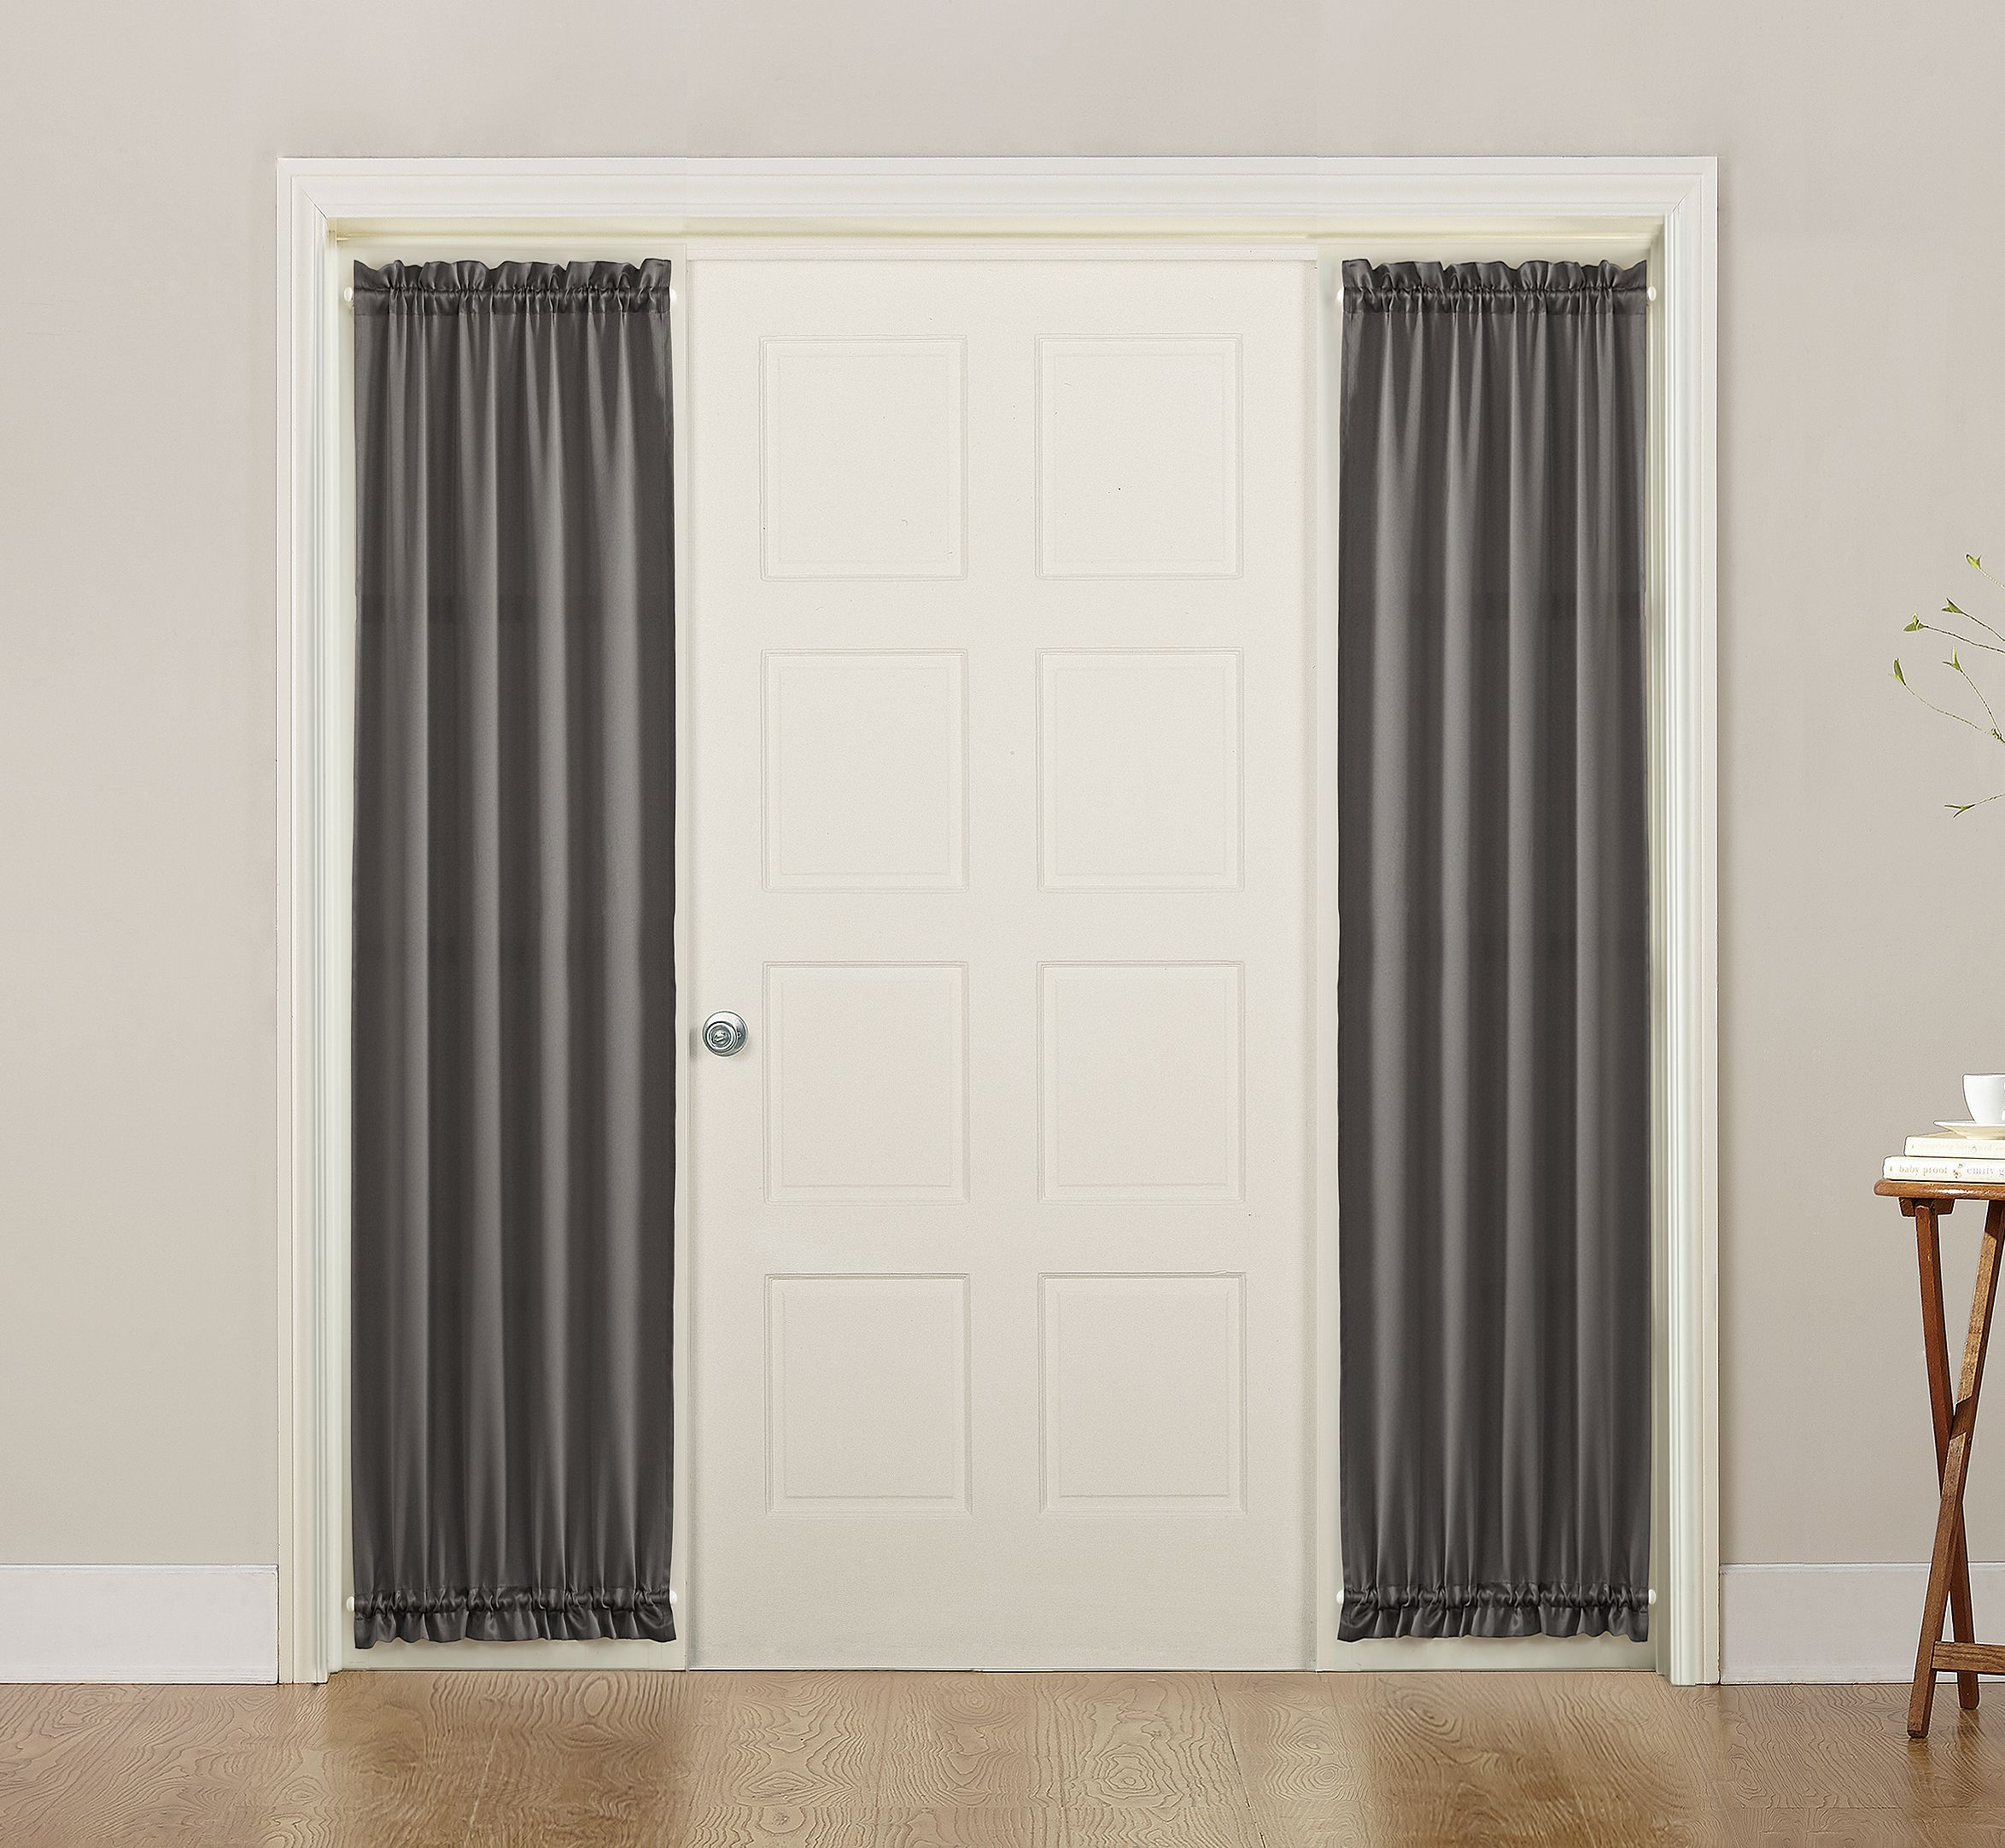 l curtains home design sidelight org french pictures ideas panel handballtunisie and curtain door transcendent